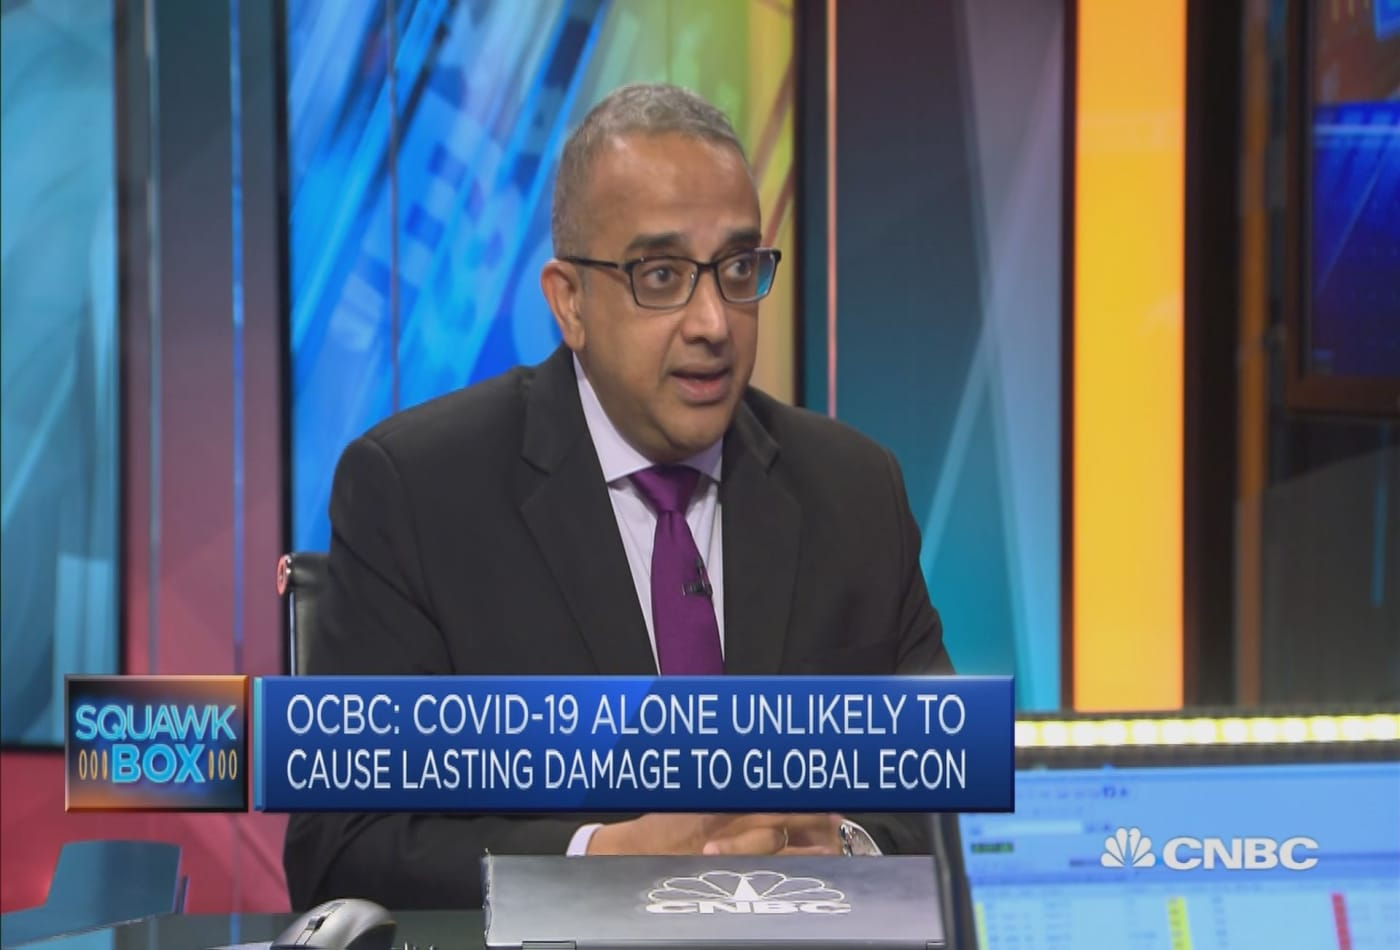 Investors have 'hardened' to market upsets like the coronavirus crisis: OCBC